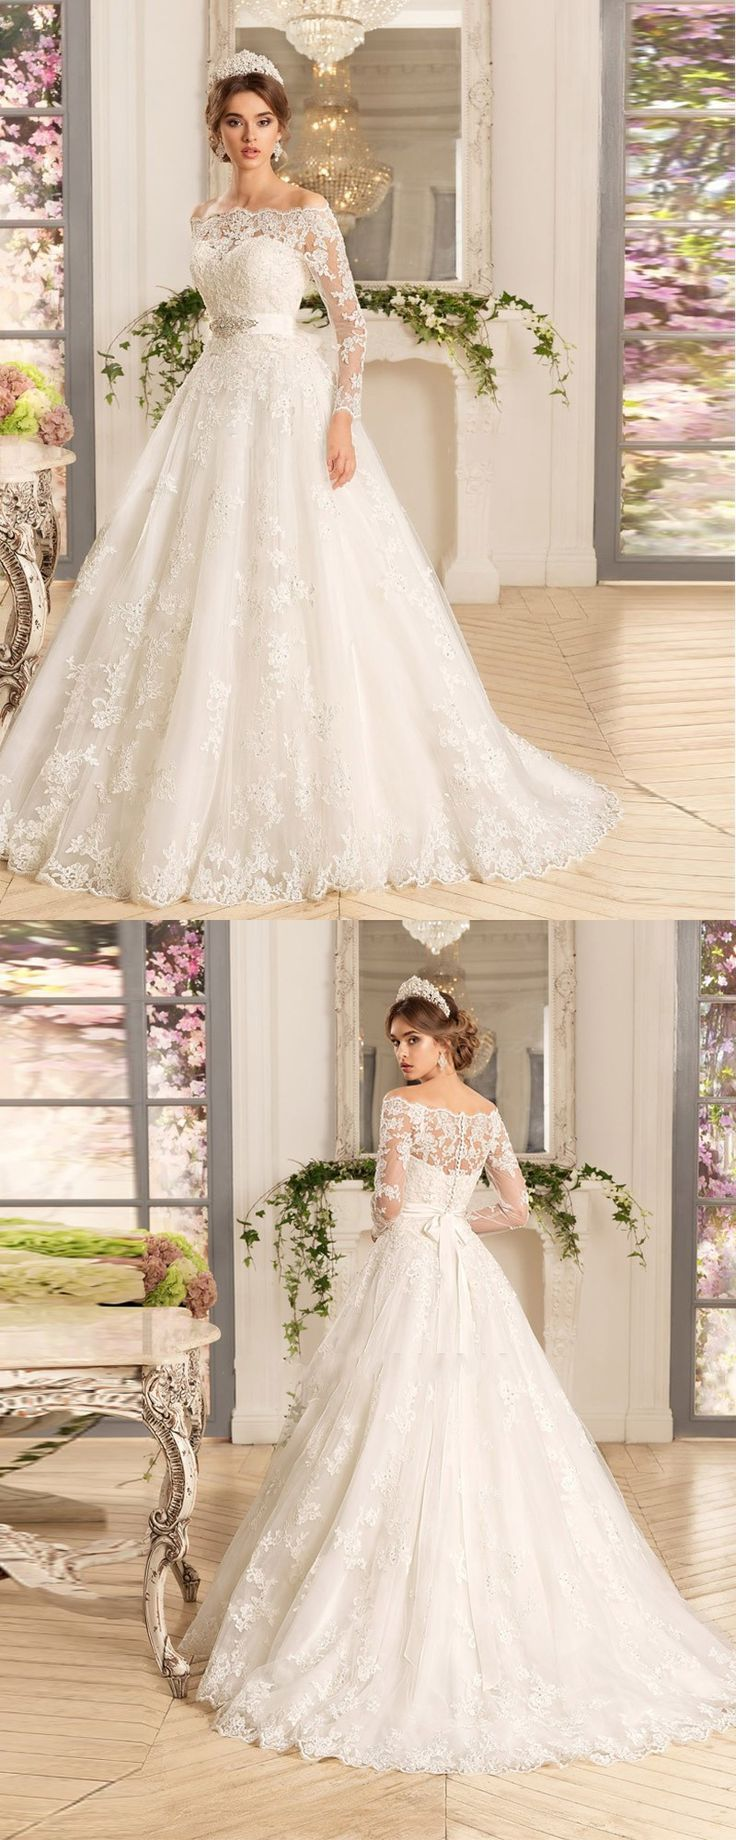 This one uc wedding stuff uc pinterest wedding dresses